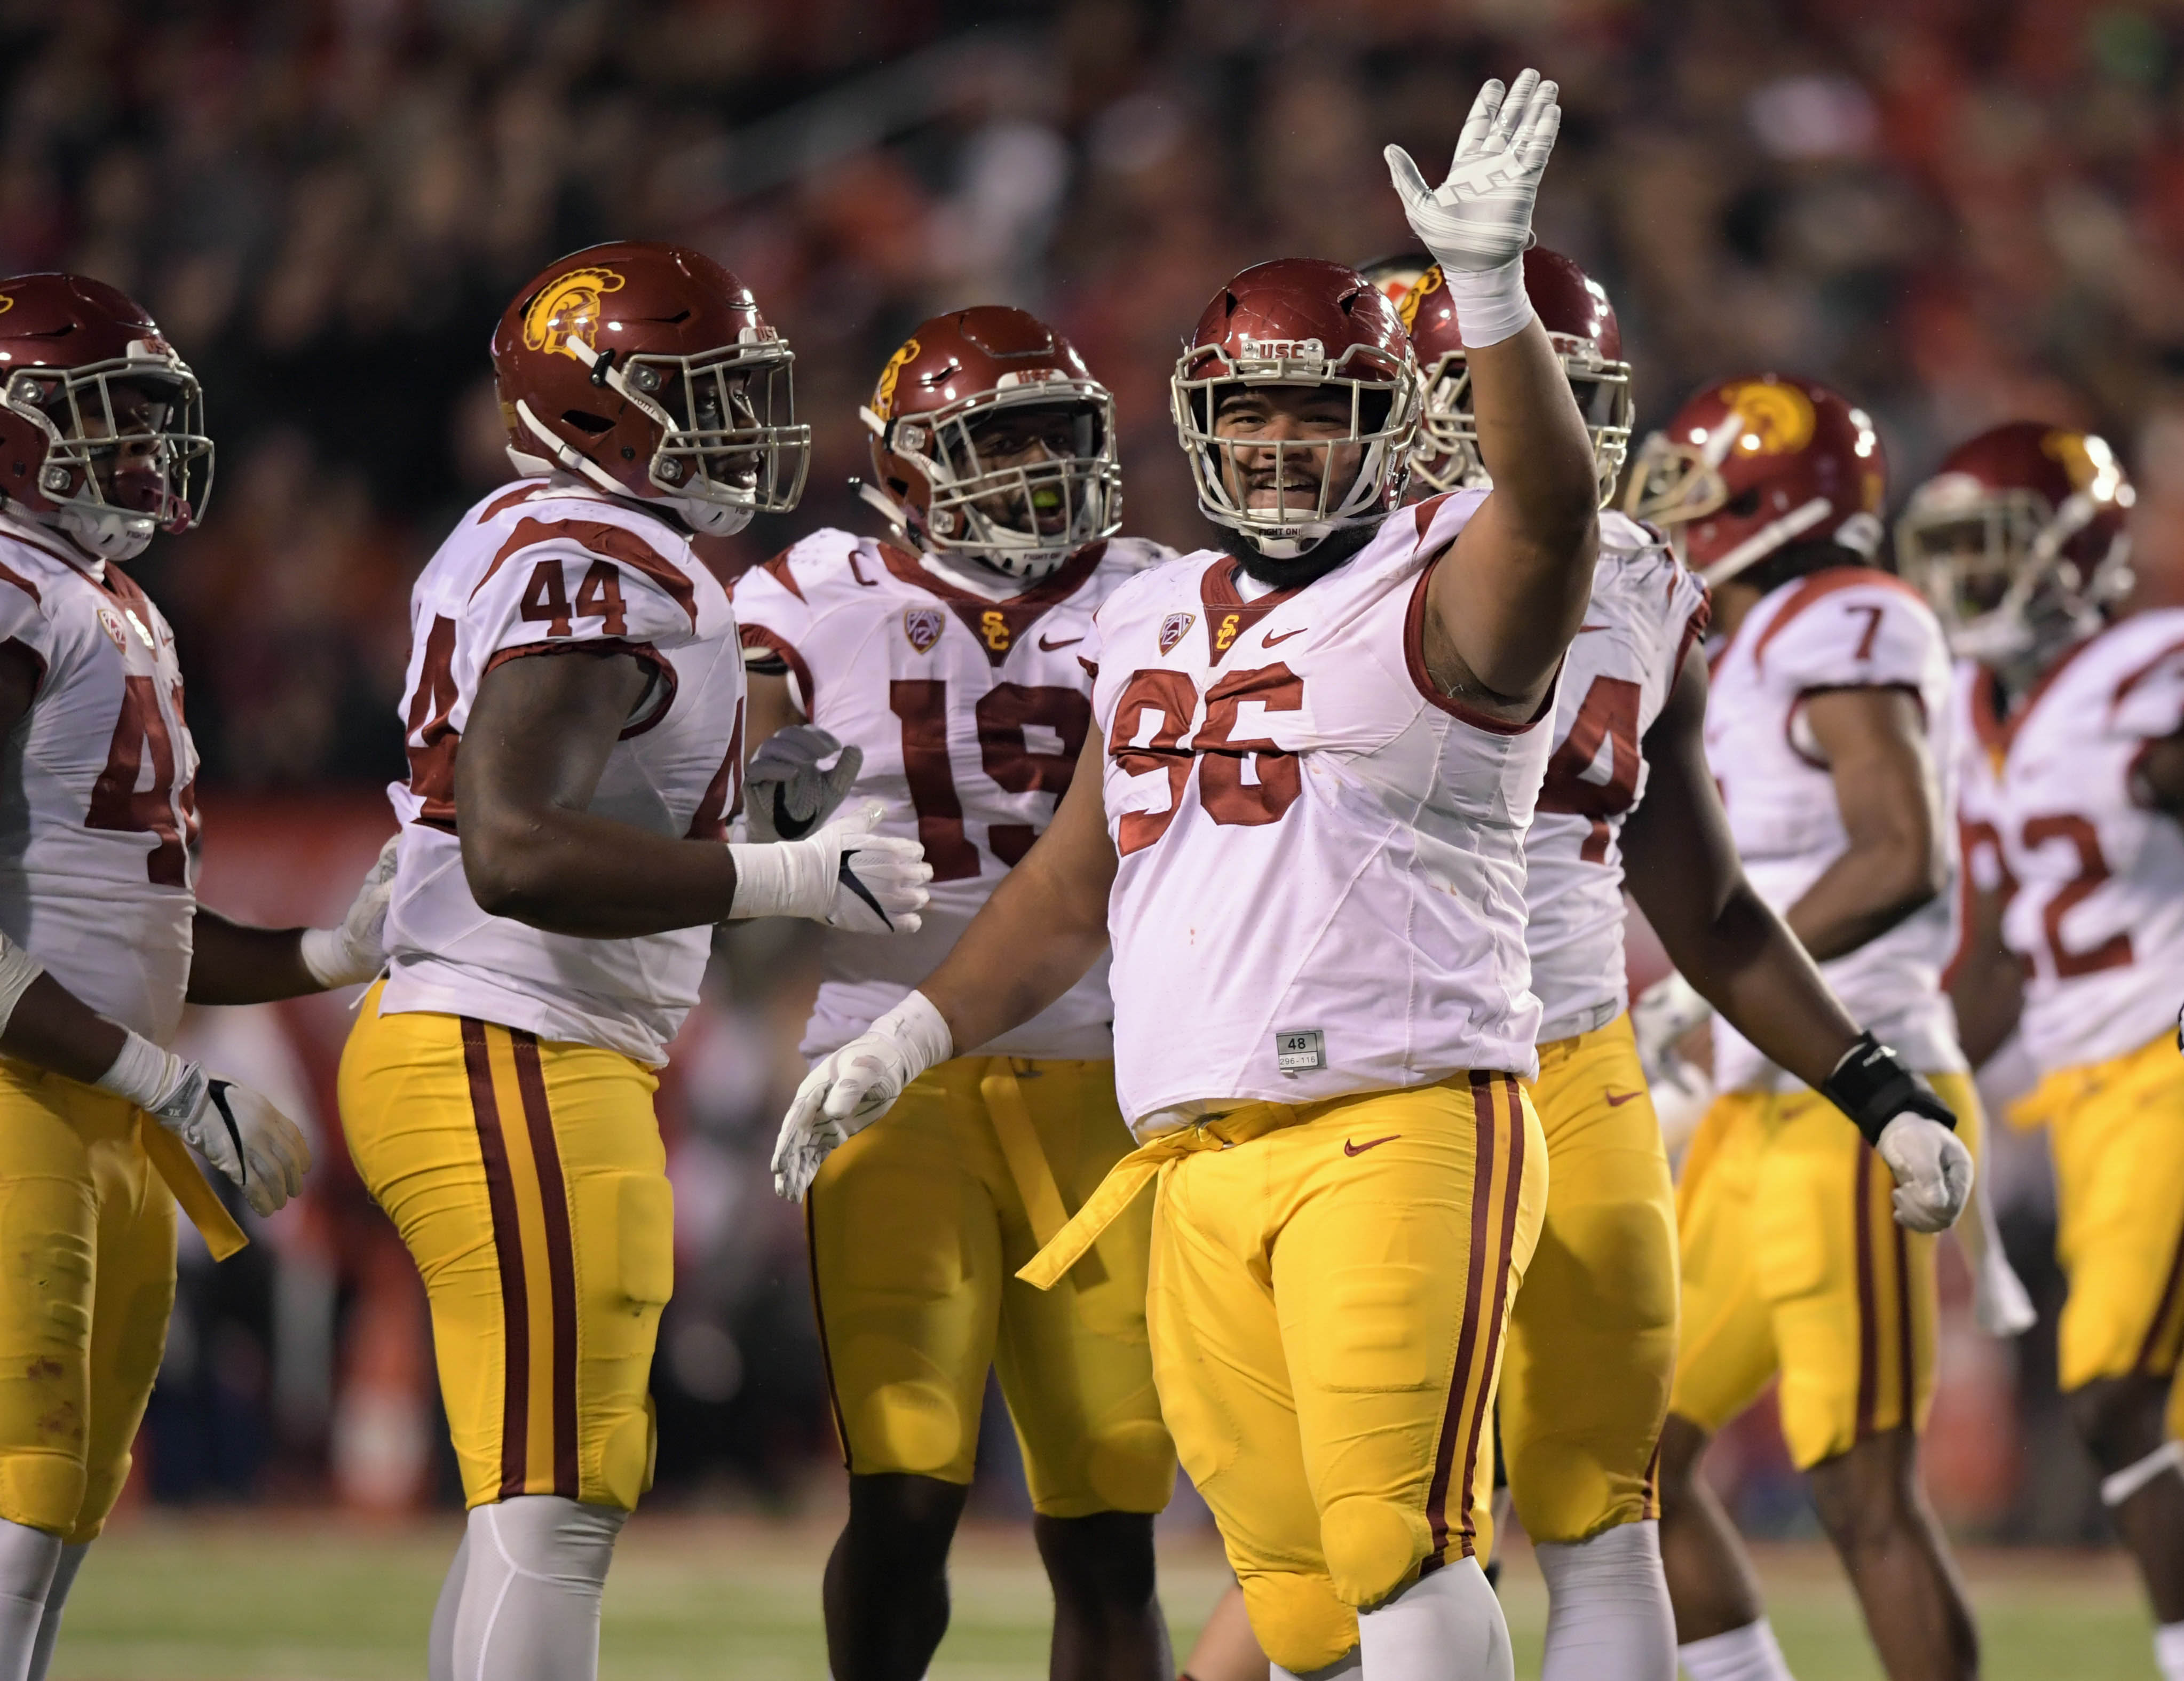 Sep 23, 2016; Salt Lake City, UT, USA; USC Trojans defensive tackle Stevie Tu'ikolovatu (96) celebrates with defensive tackle Malik Dorton (44) and linebacker Michael Hutchings (19) during a NCAA football game at Rice-Eccles Stadium. Utah defeated USC 31-27. Mandatory Credit: Kirby Lee-USA TODAY Sports